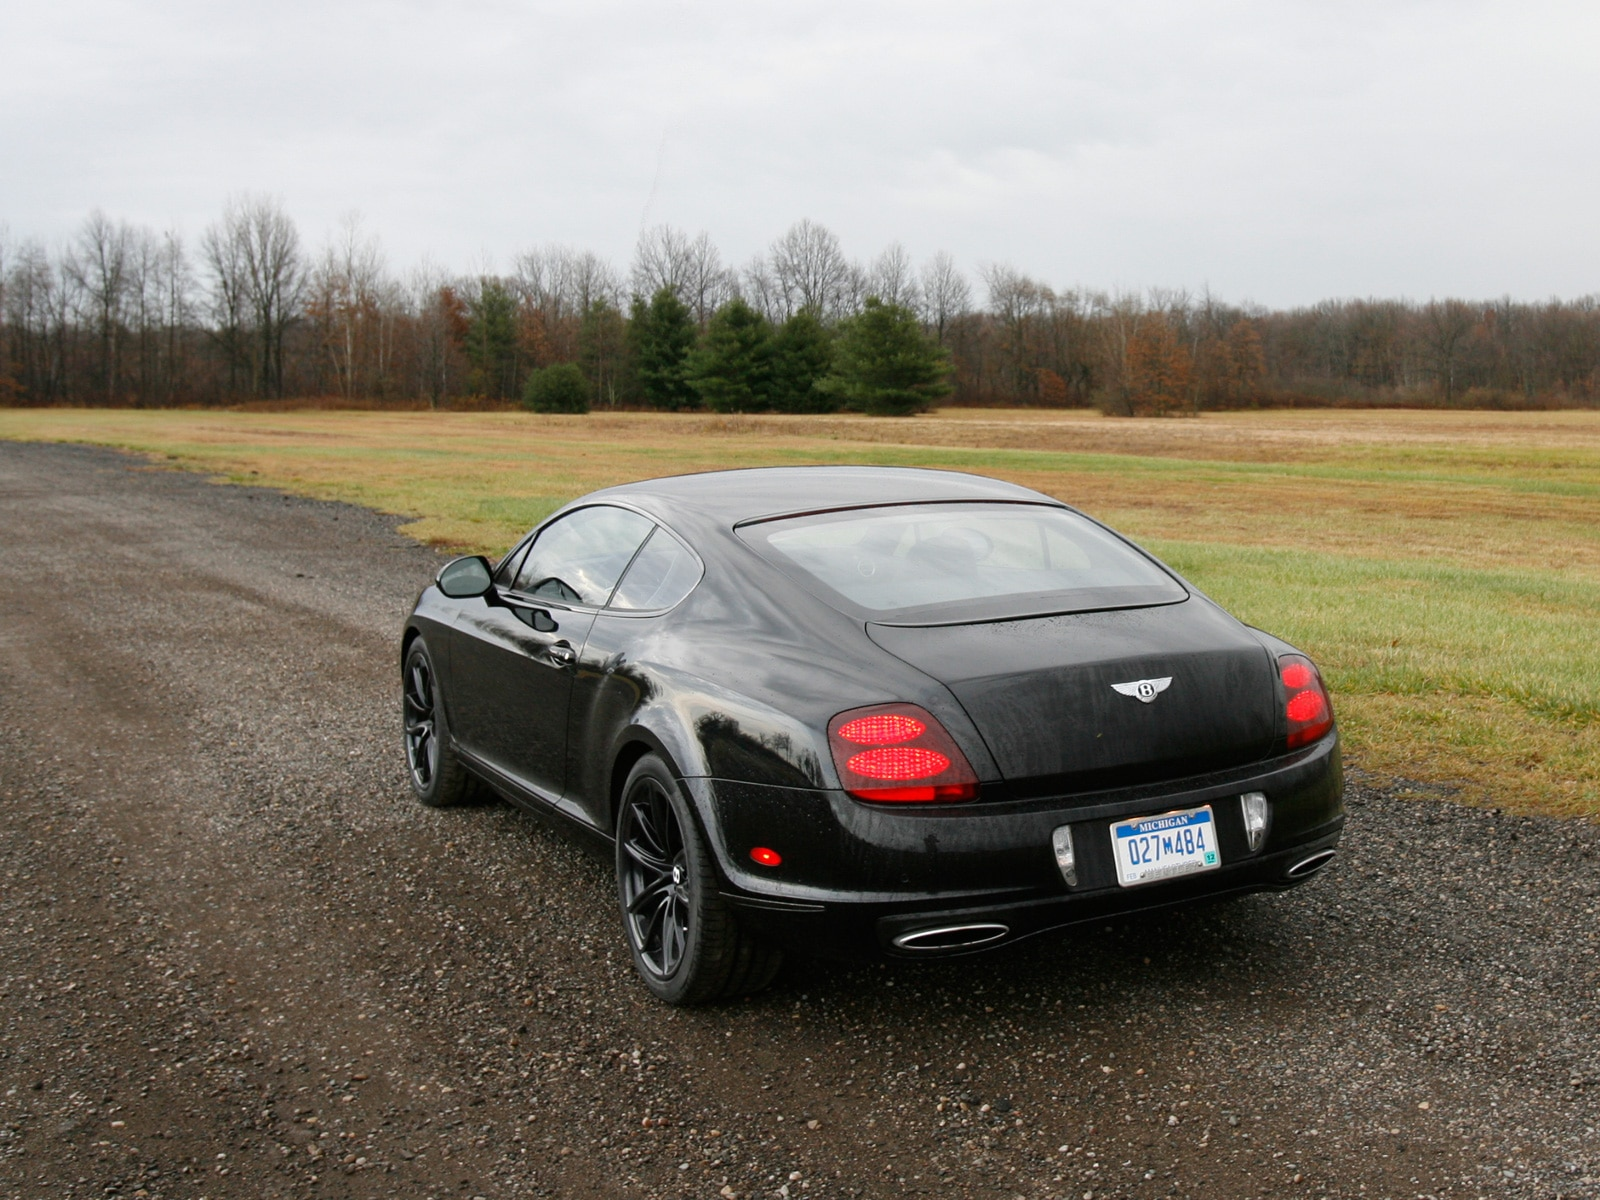 0911 08 Z 2010 Bentley Continental Supersports Rear Three Quarter View